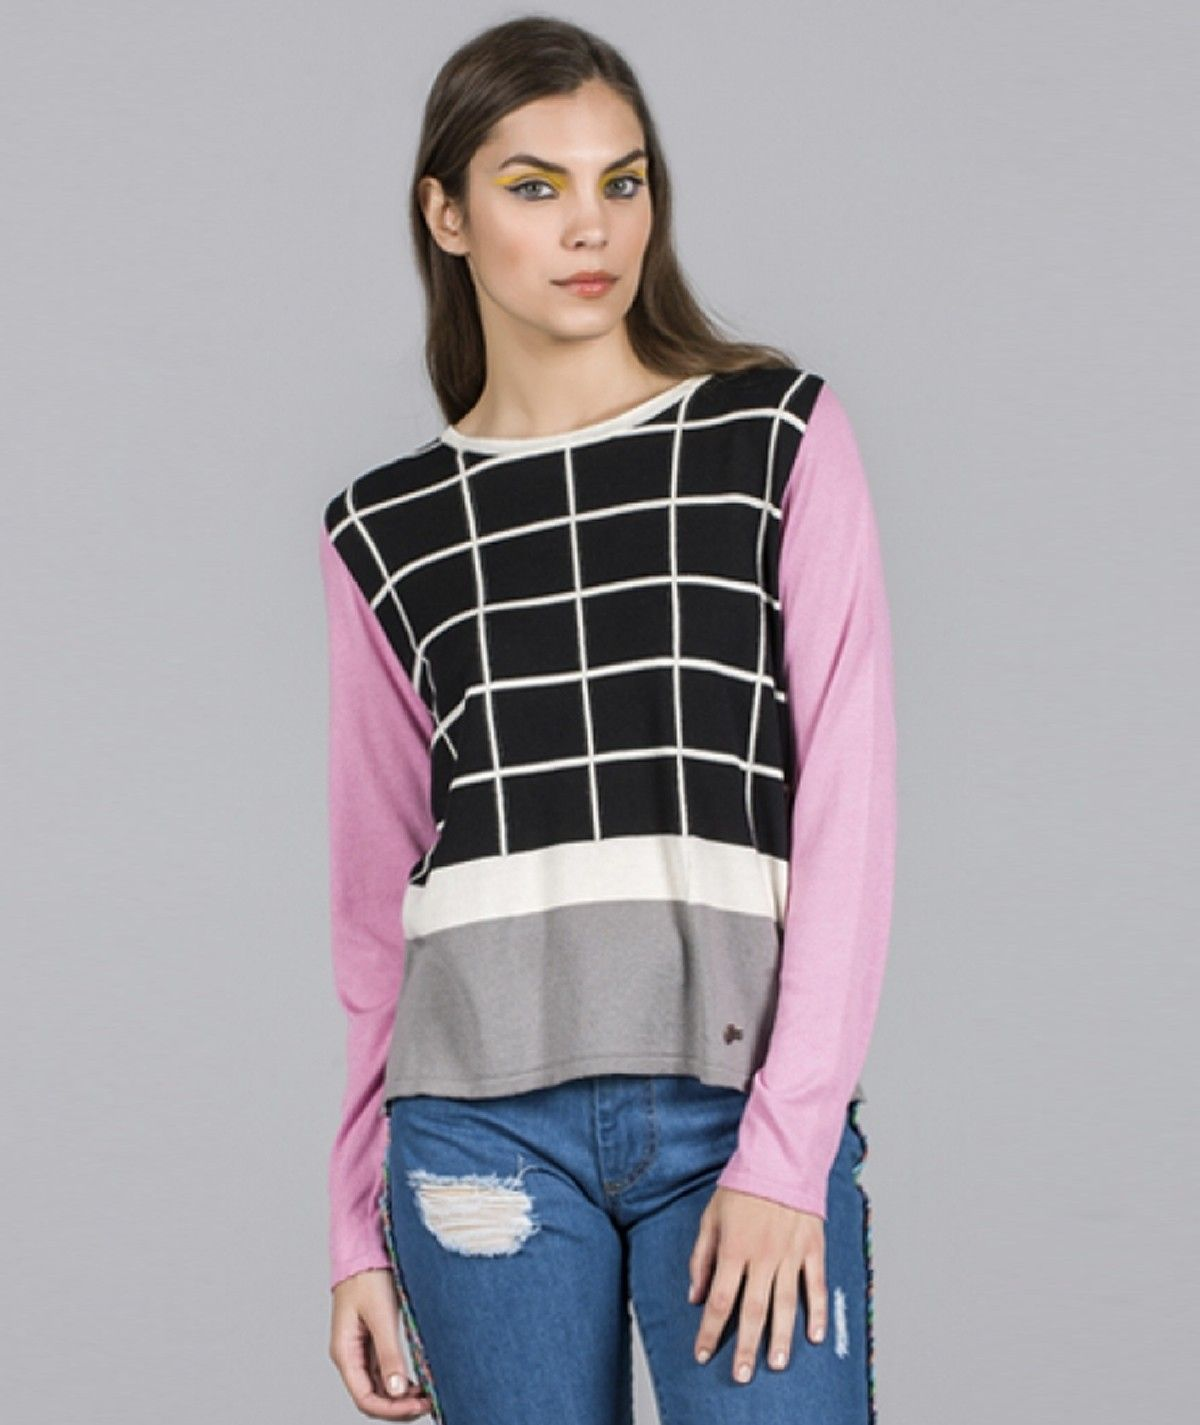 Sweater with square motif